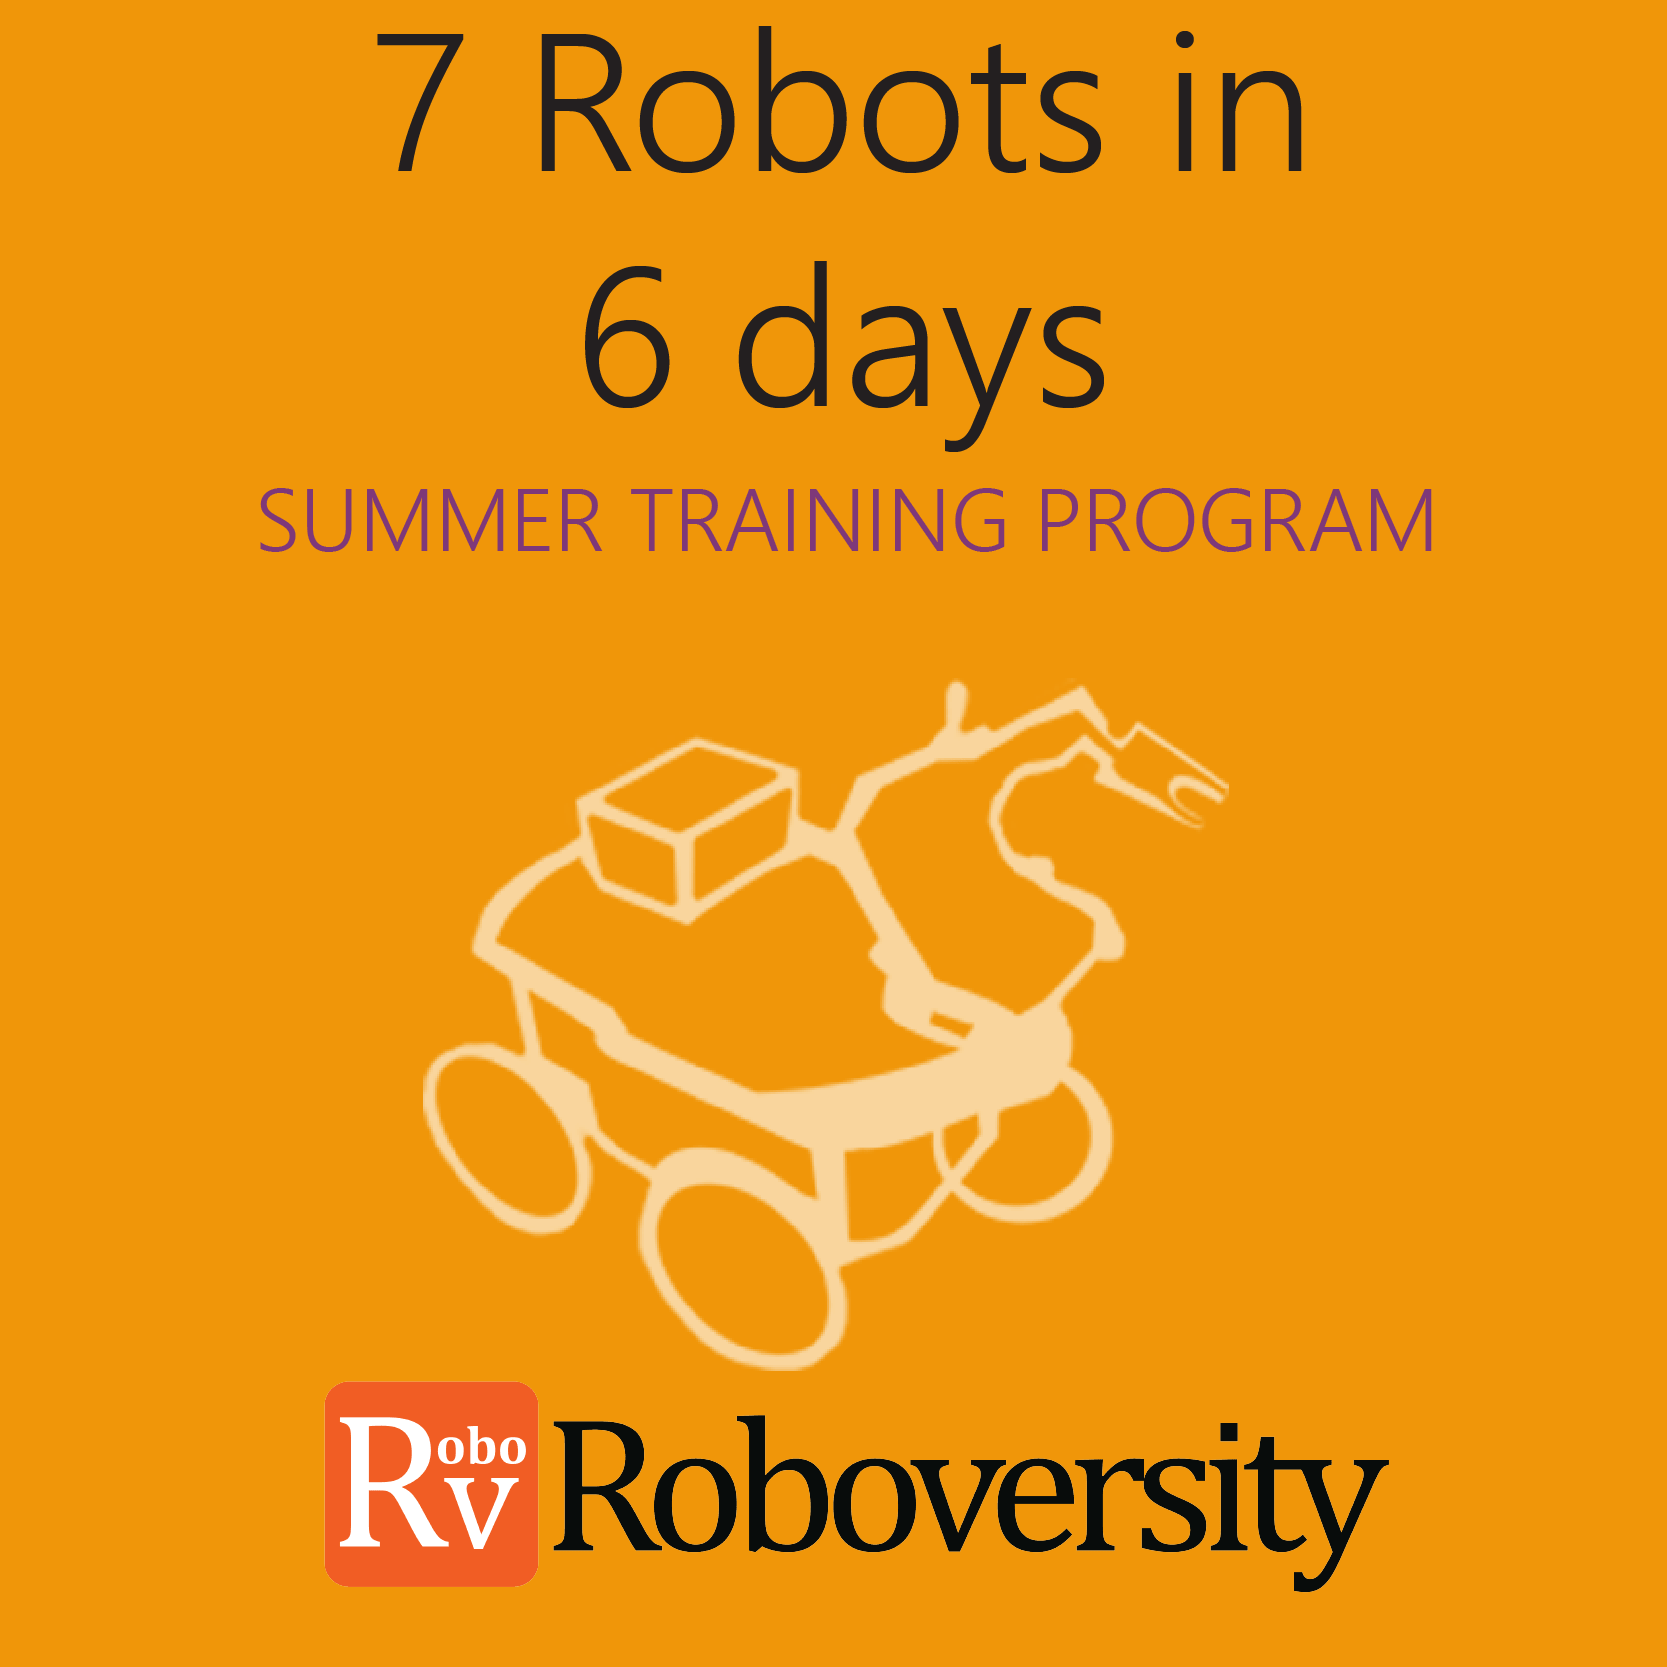 Summer Training Program in Robotics - 7 Robots in 6 Days in Coimbatore